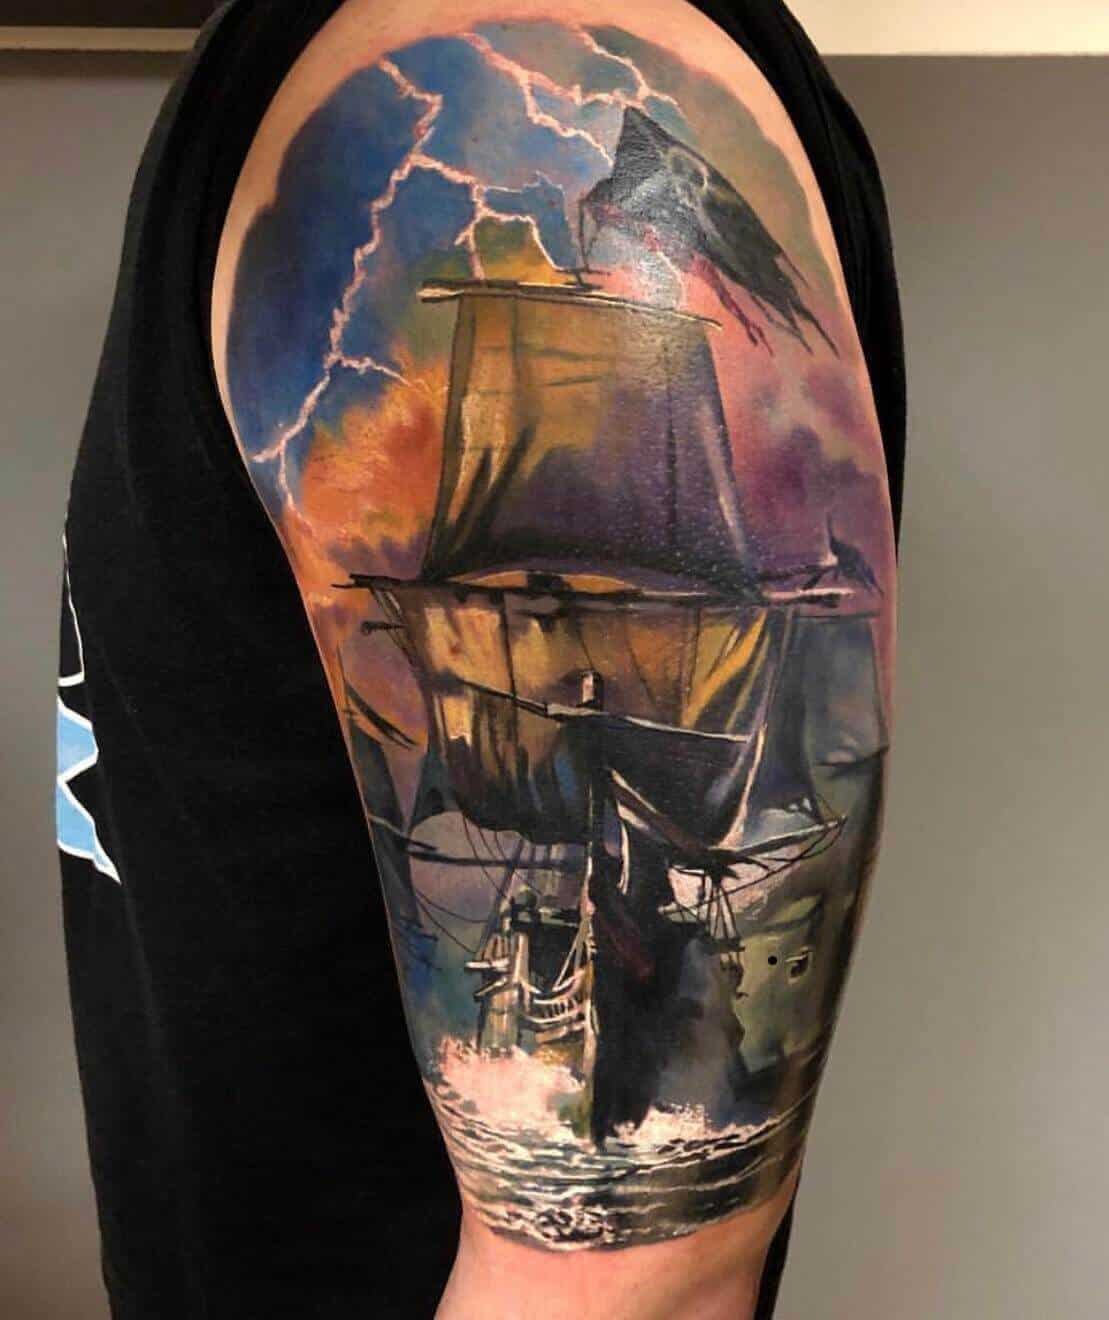 watercolor boat tattoo on arm